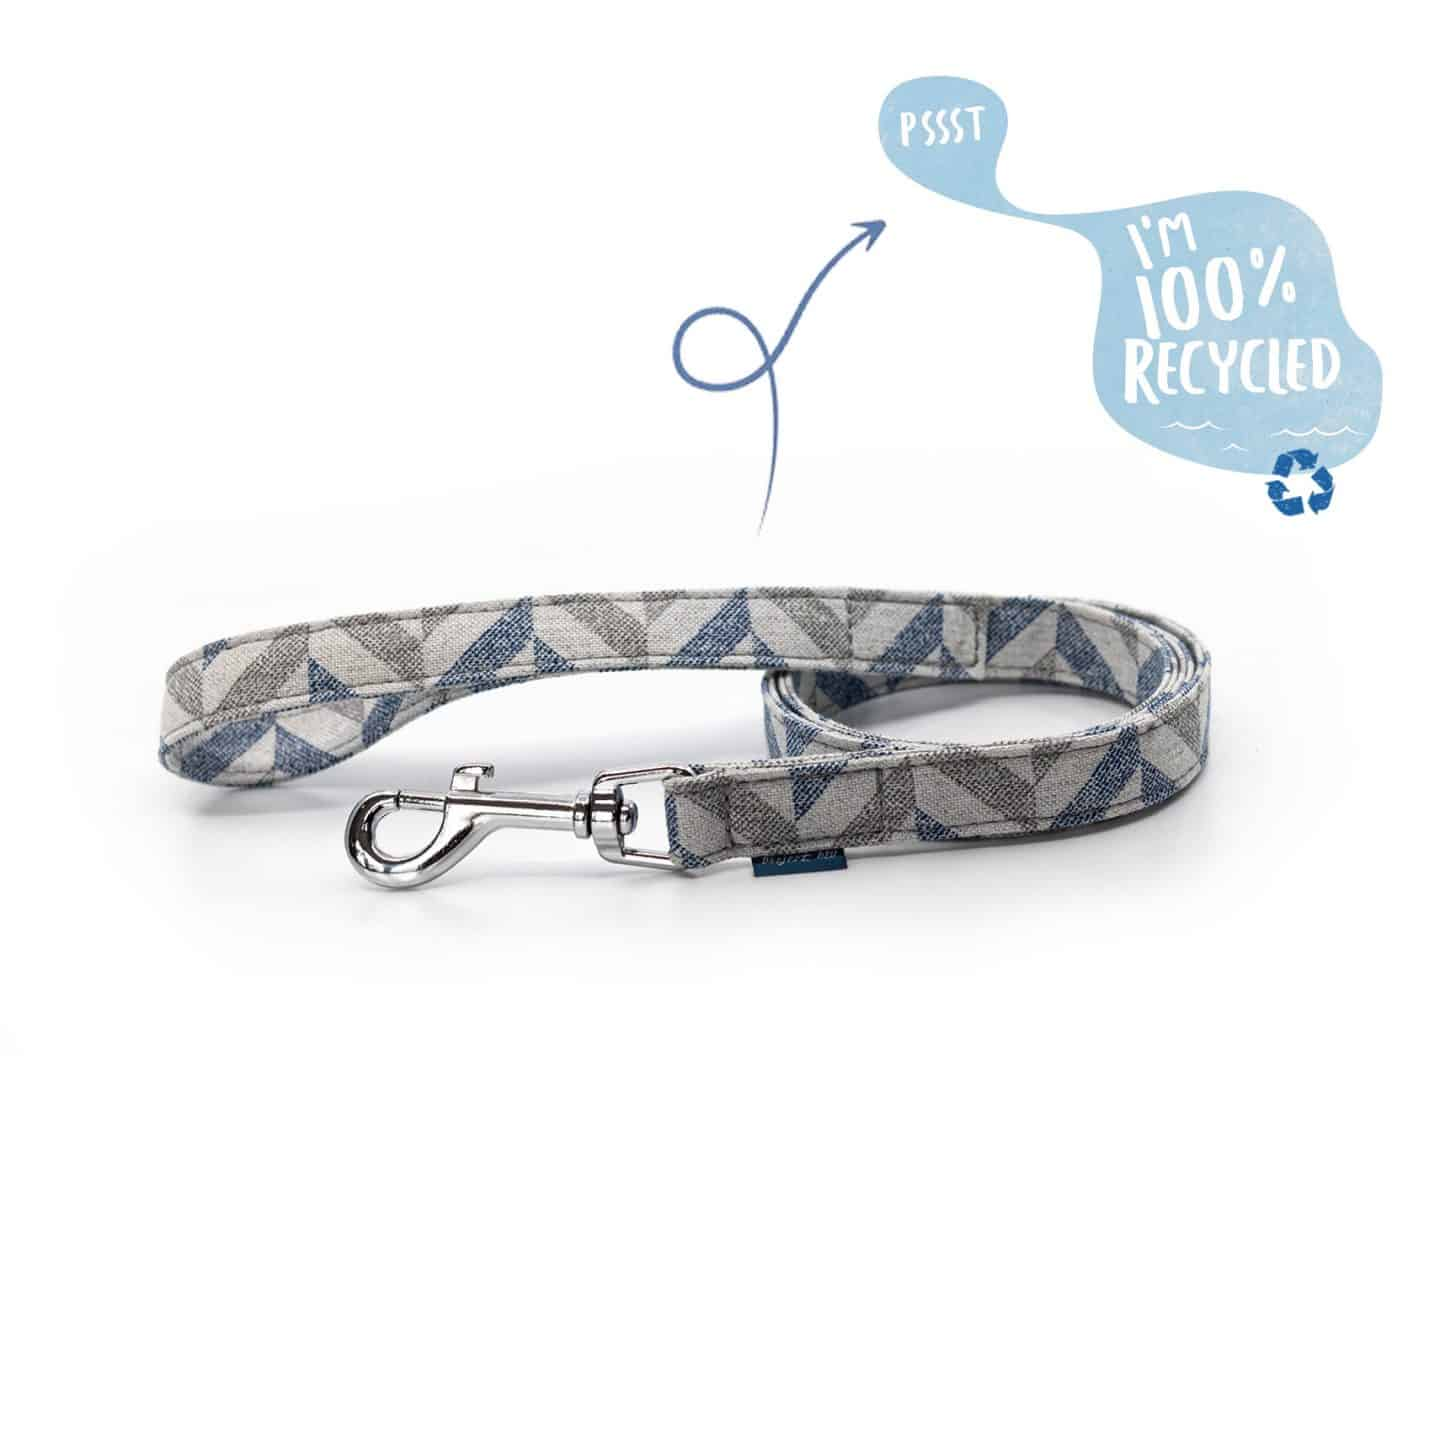 Recycled Dog Leads from Project Blu